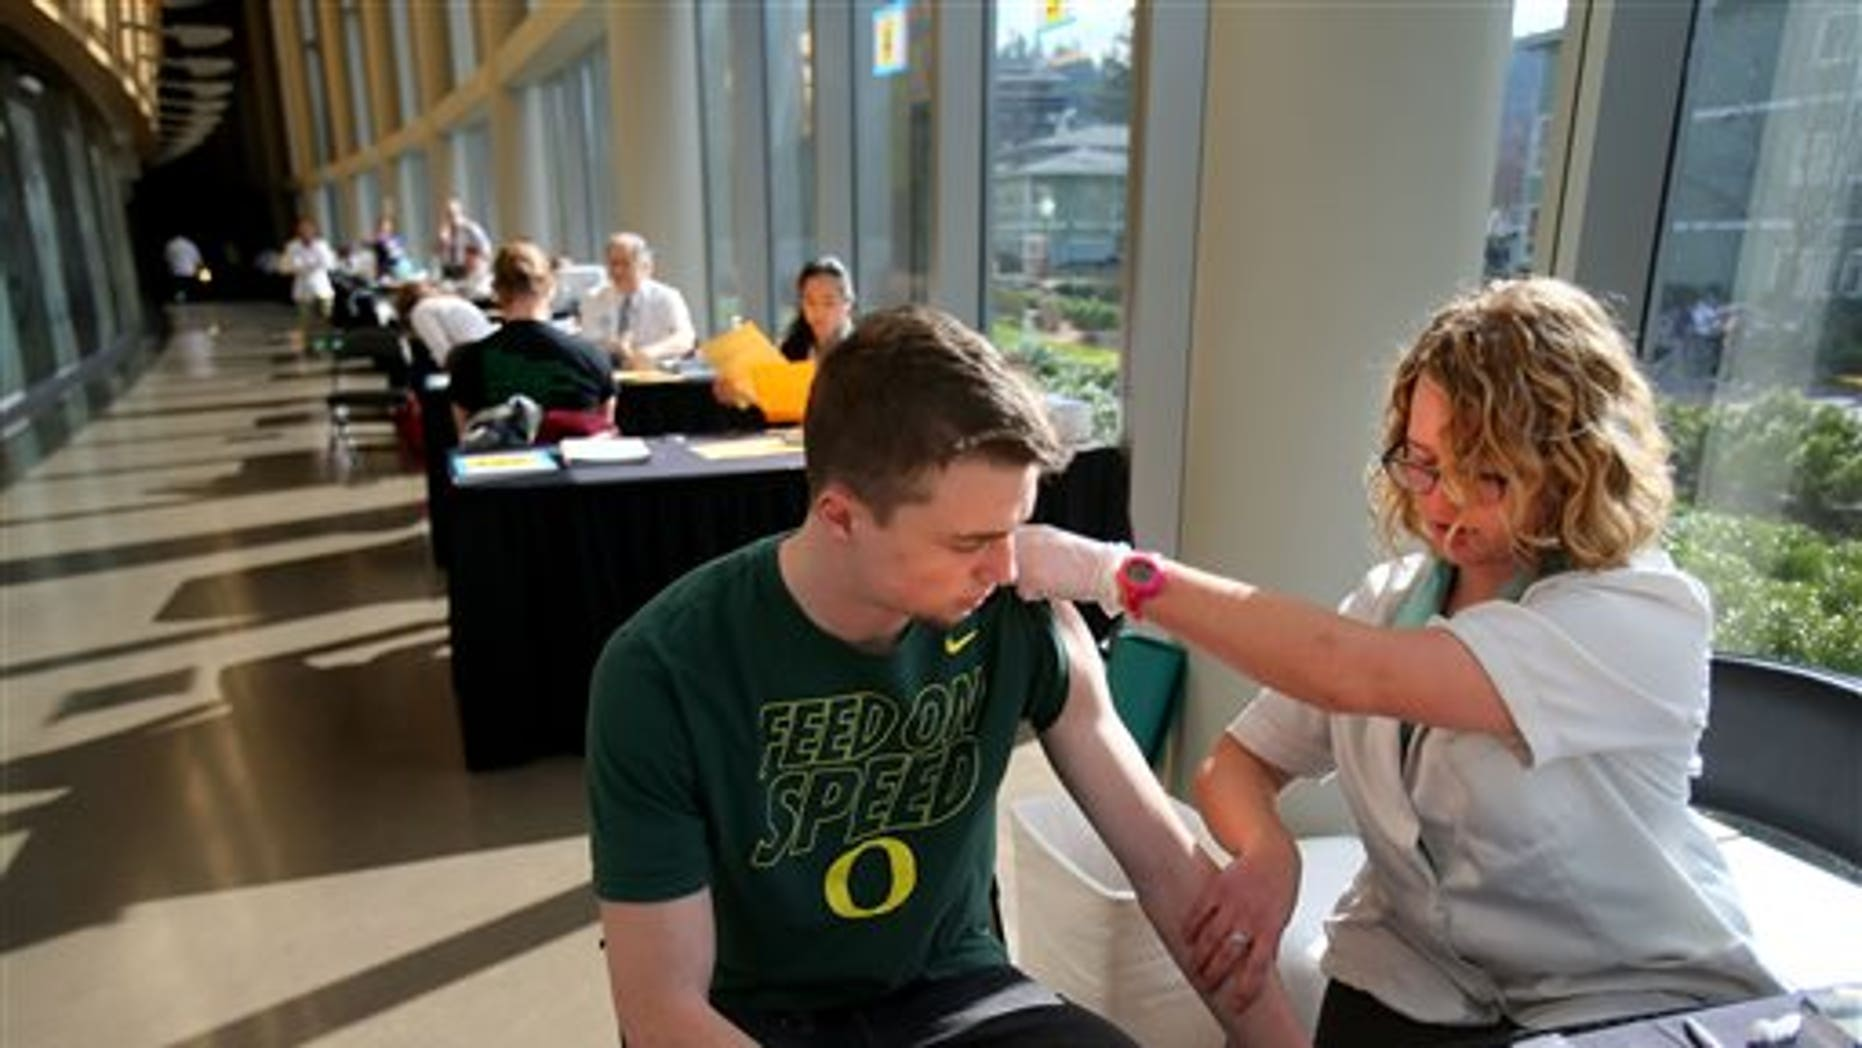 FILE - In this Monday, March 2, 2015 photo, pharmacist Jenna Wright administers the Meningitis B vaccine to University of Oregon freshman Drew Russert during a mass vaccination clinic at Matthew Knight Arena in Eugene, Ore. after an outbreak of meningococcemia, resulting in the death of a student. (AP Photo/The Register-Guard, Brian Davies)